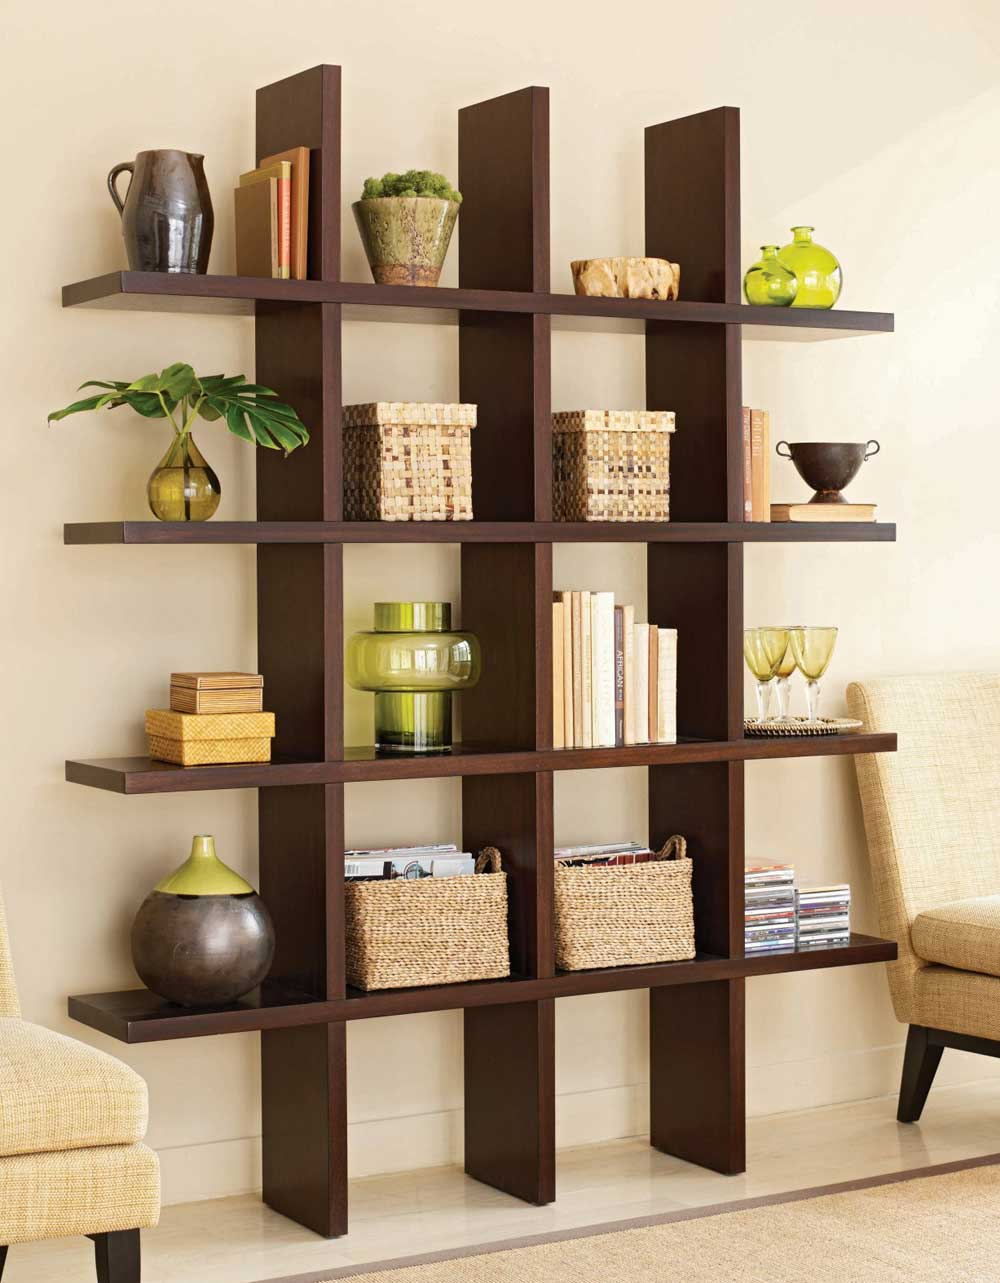 Simple bookcase interior room dividers